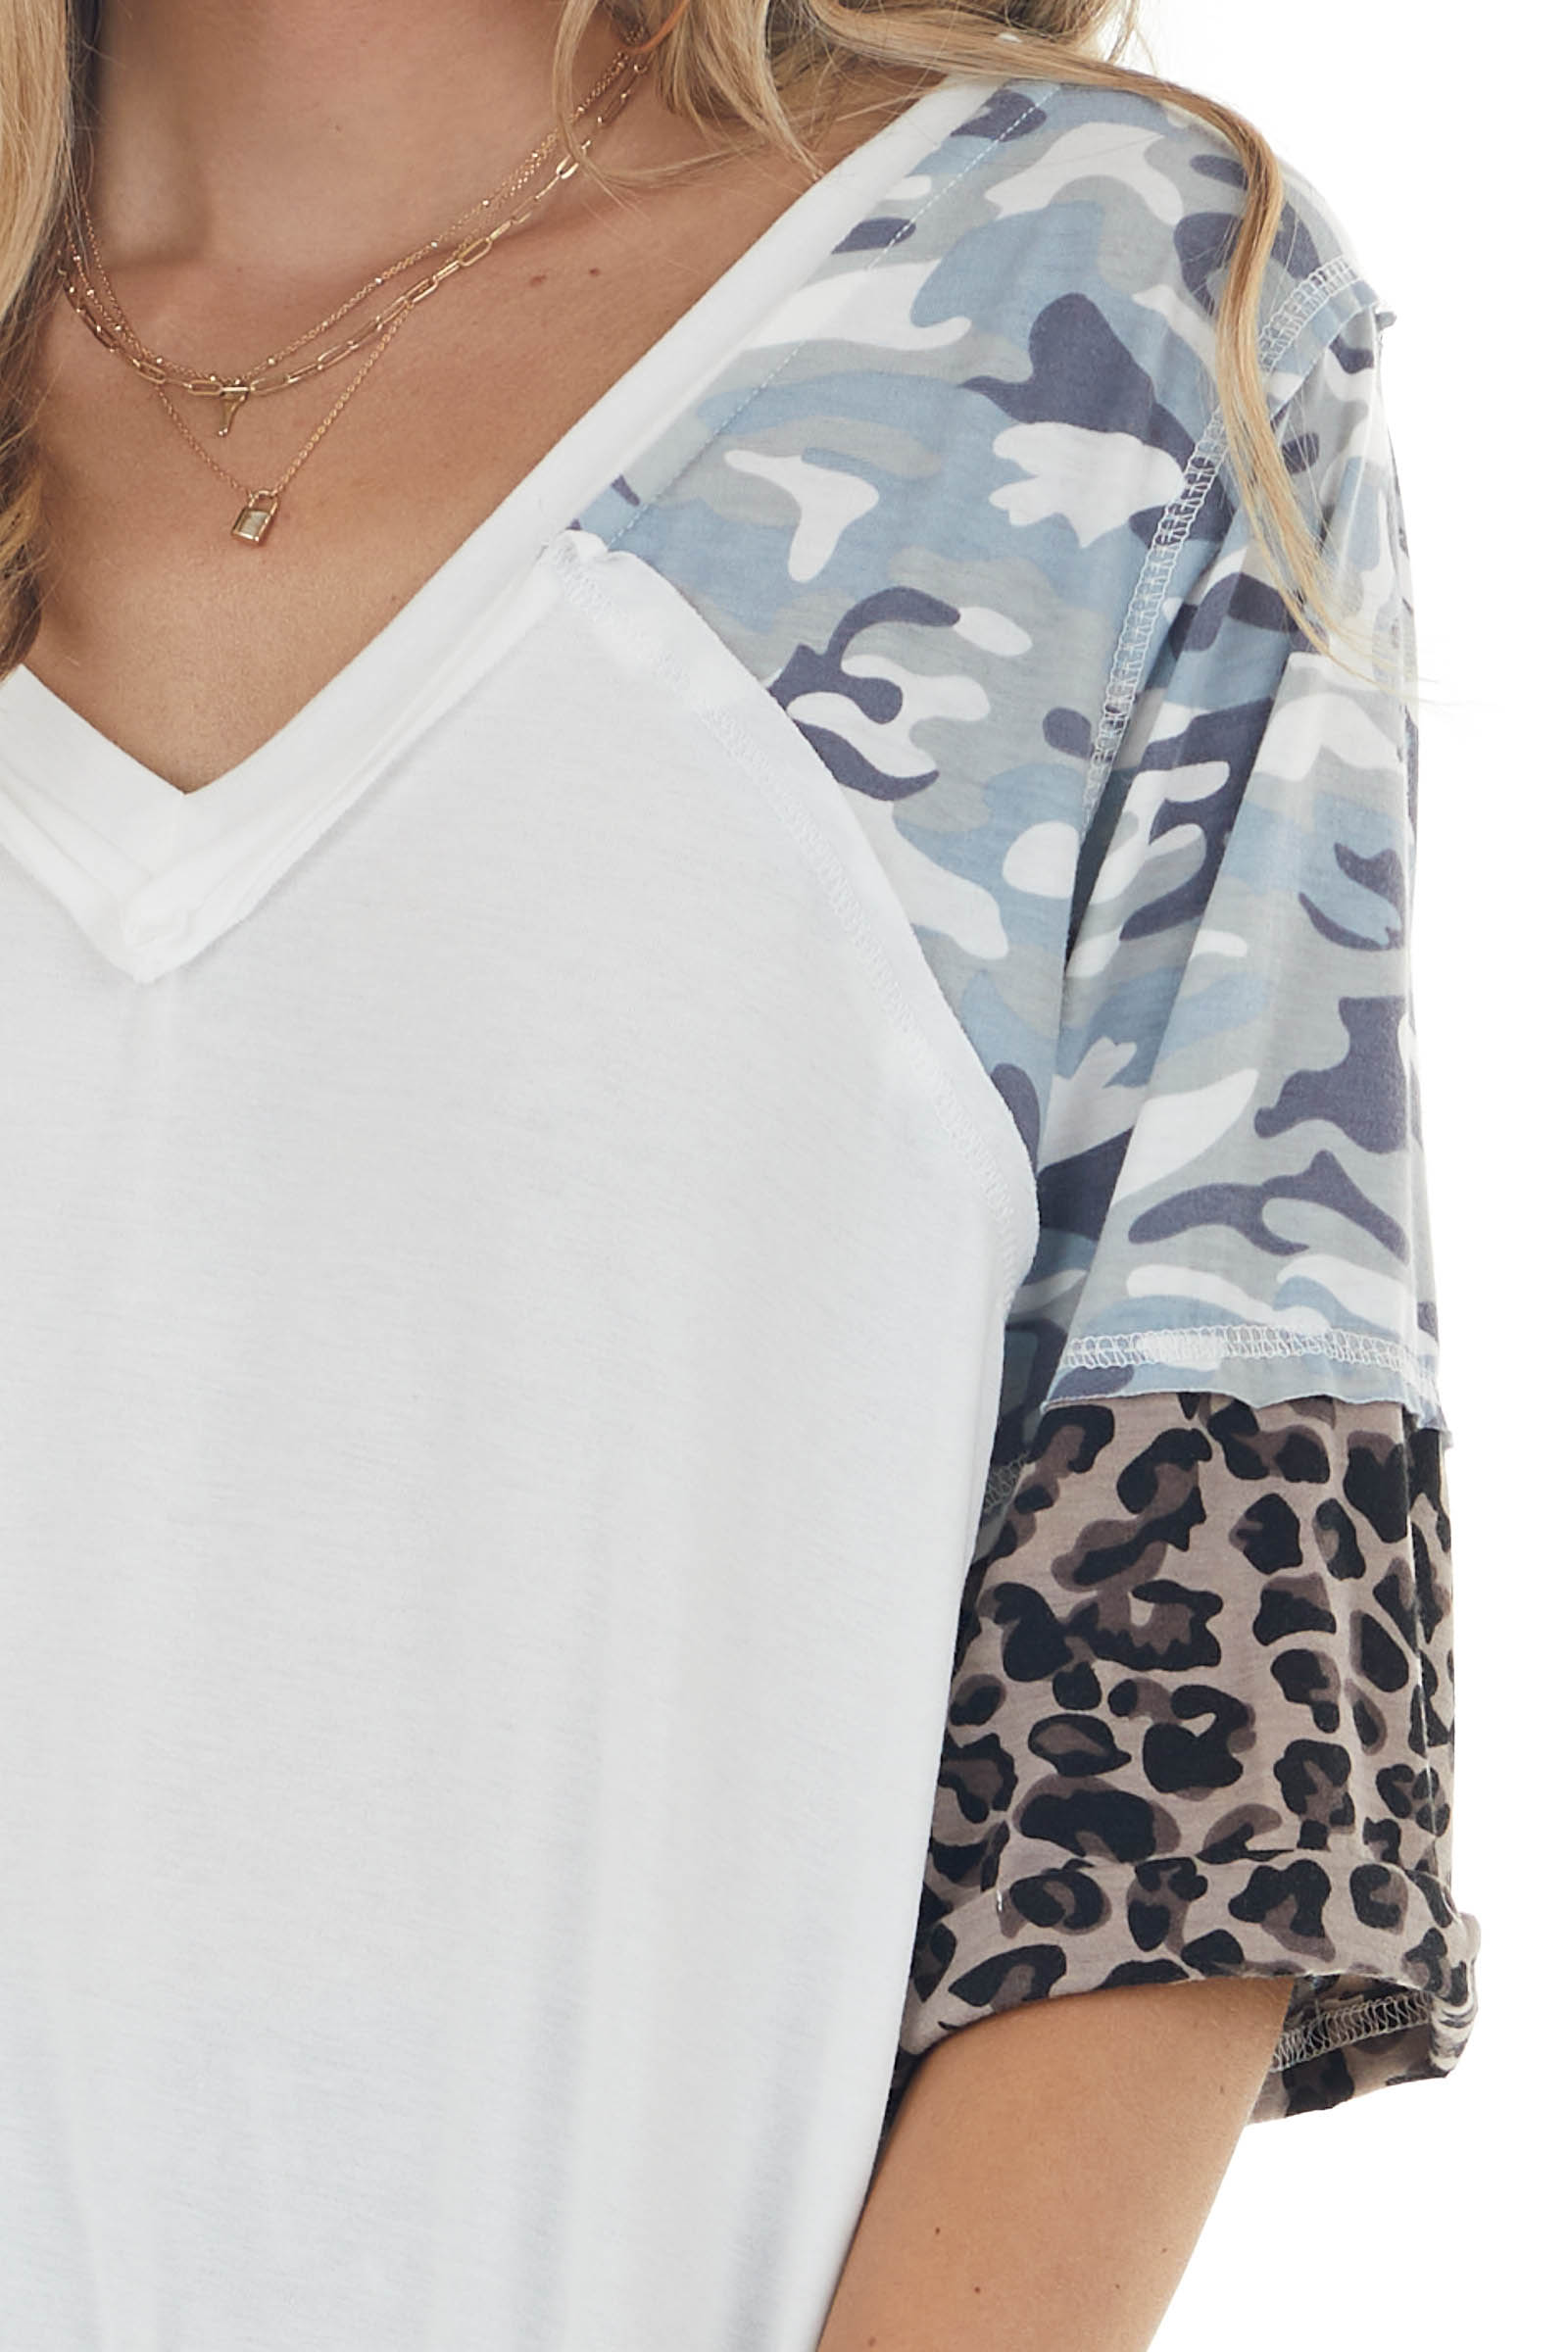 Ivory Super Soft Knit Top with 3/4 Length Multiprint Sleeves